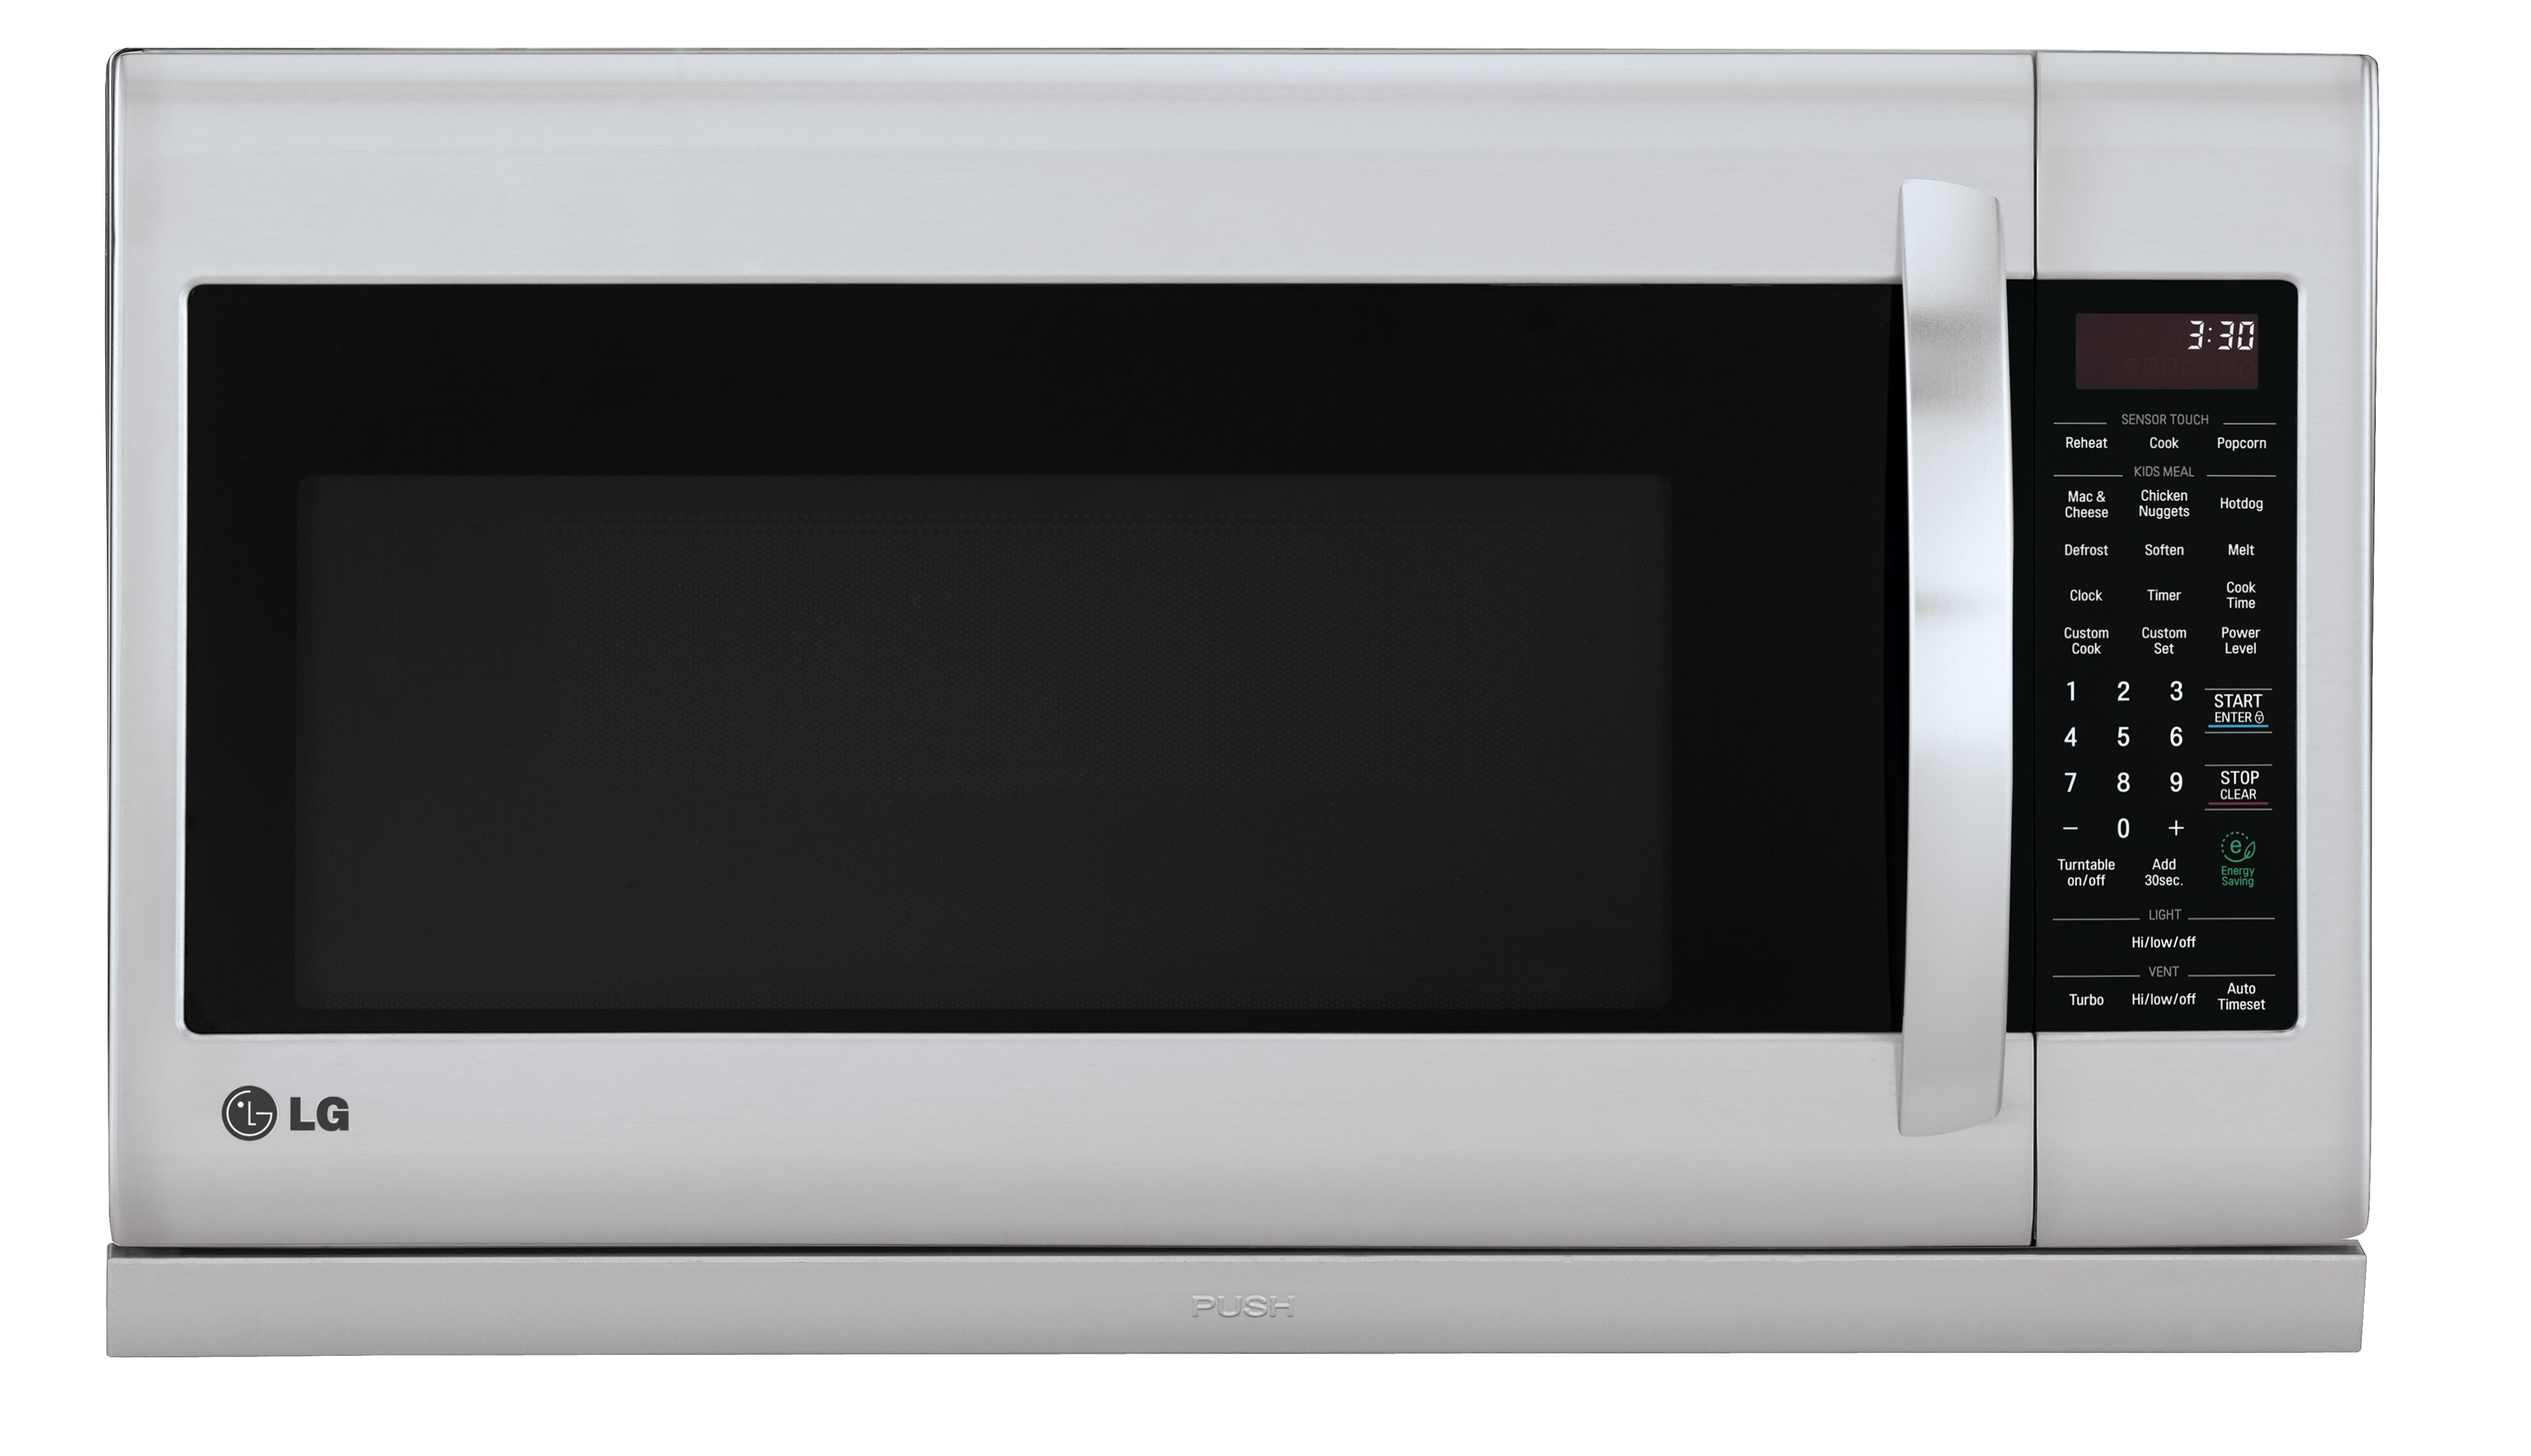 LG Appliances Microwaves 2.2 cu. ft. Over-the-Range Microwave - Item Number: LMH2235ST